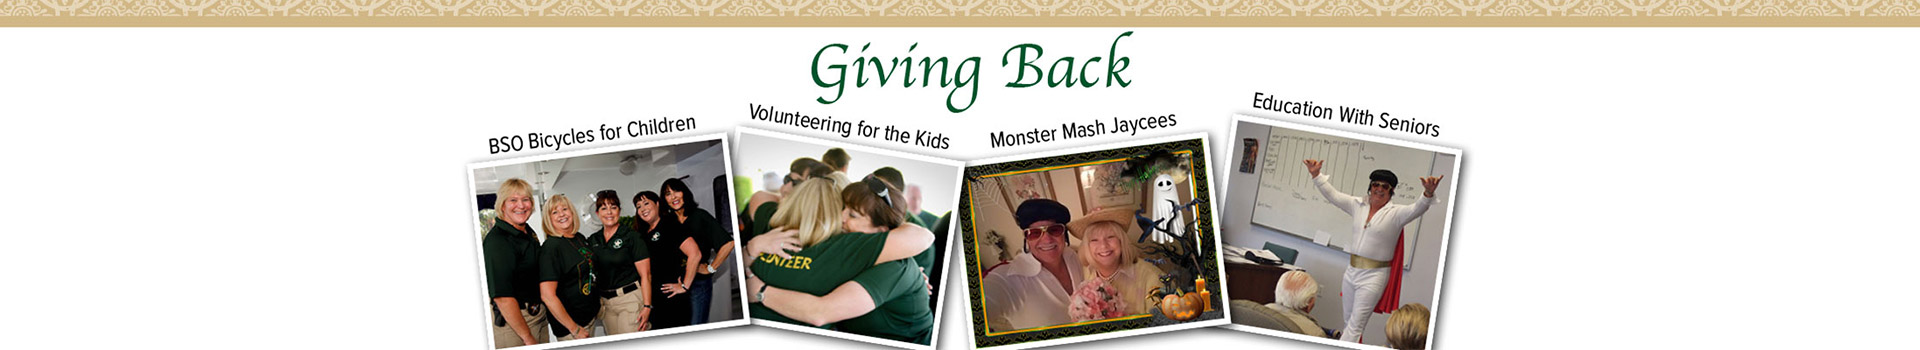 Giving-Back-1-of-2